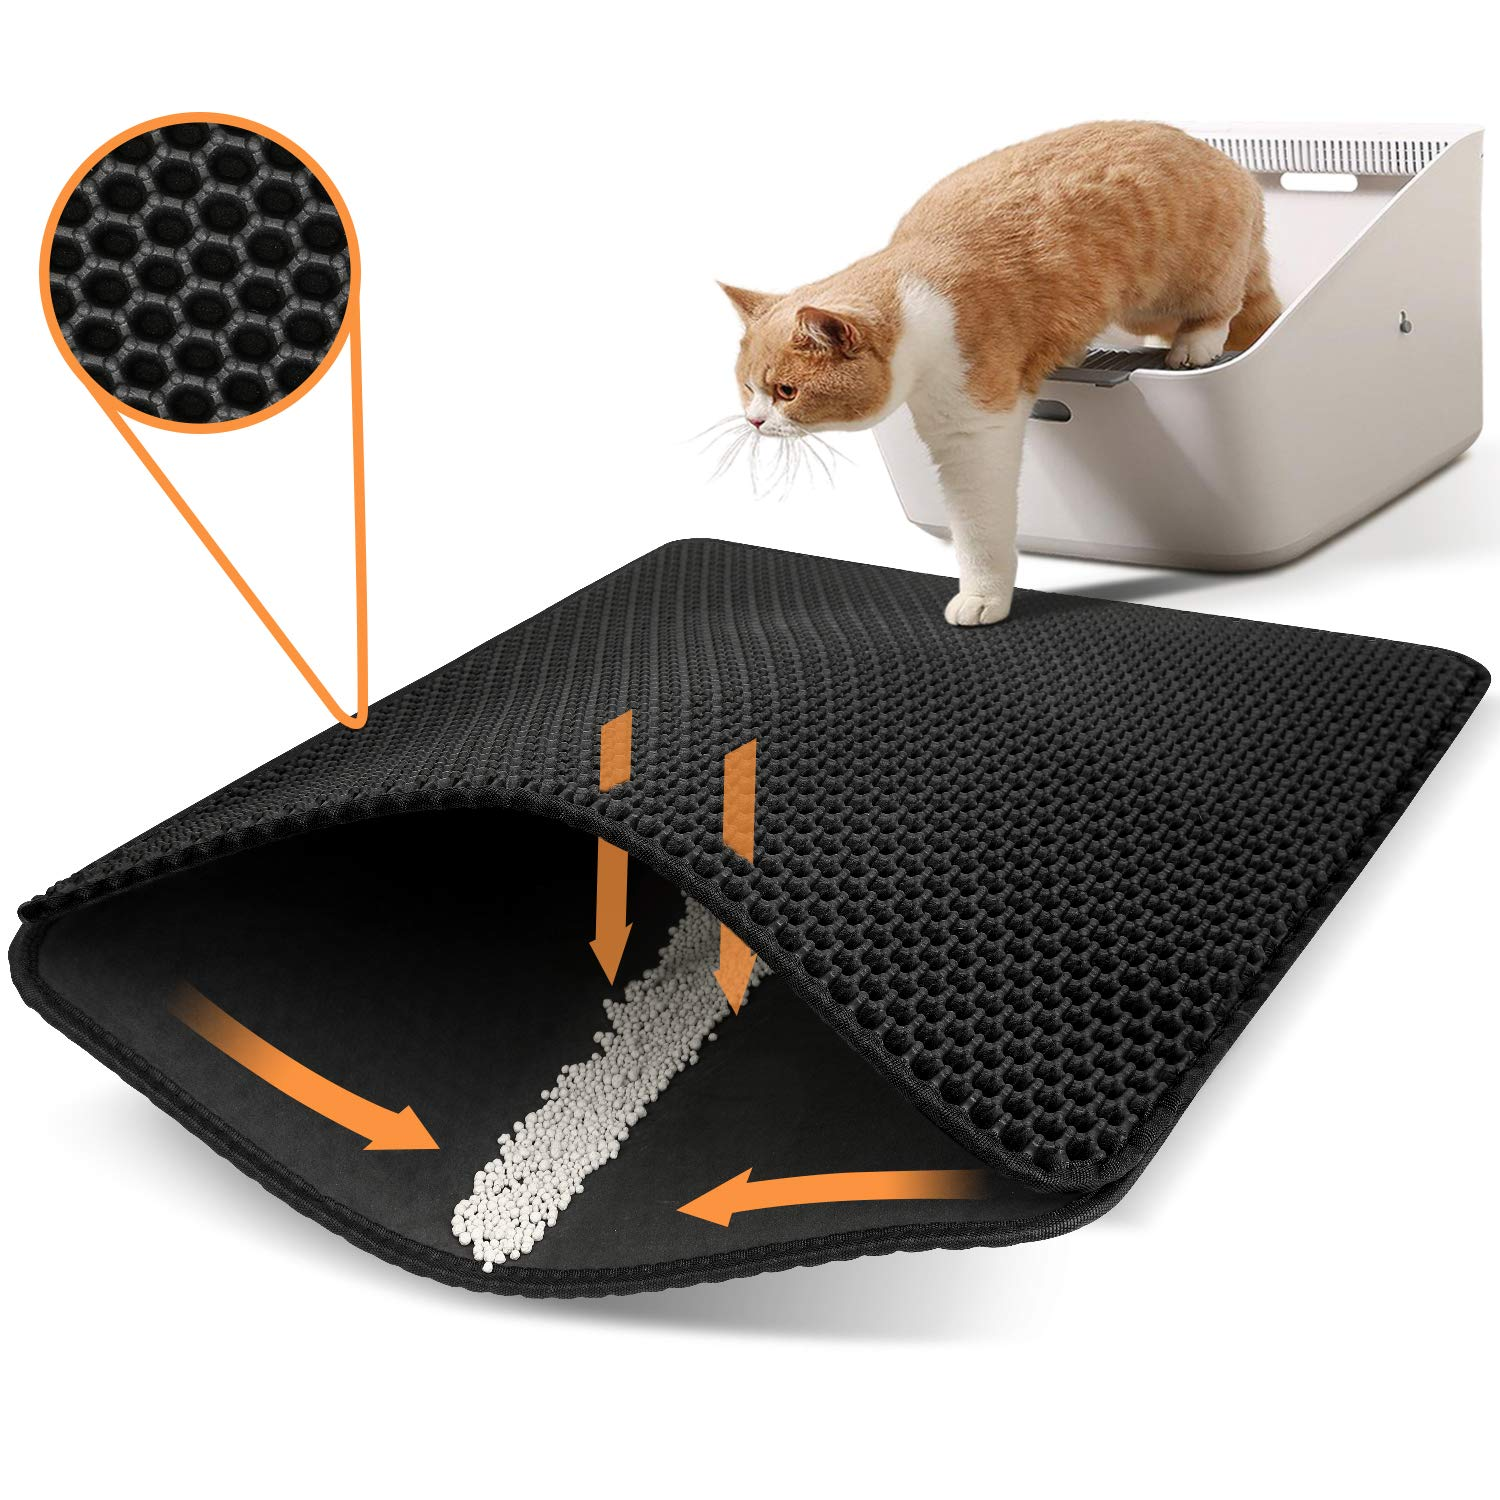 Polarduck Cat Litter Mat Cat Litter Trapping Mat, Honeycomb Double Layer Design, Urine and Water Proof Material, Scatter Control, Special Side Handles Design Easier to Clean,Washable